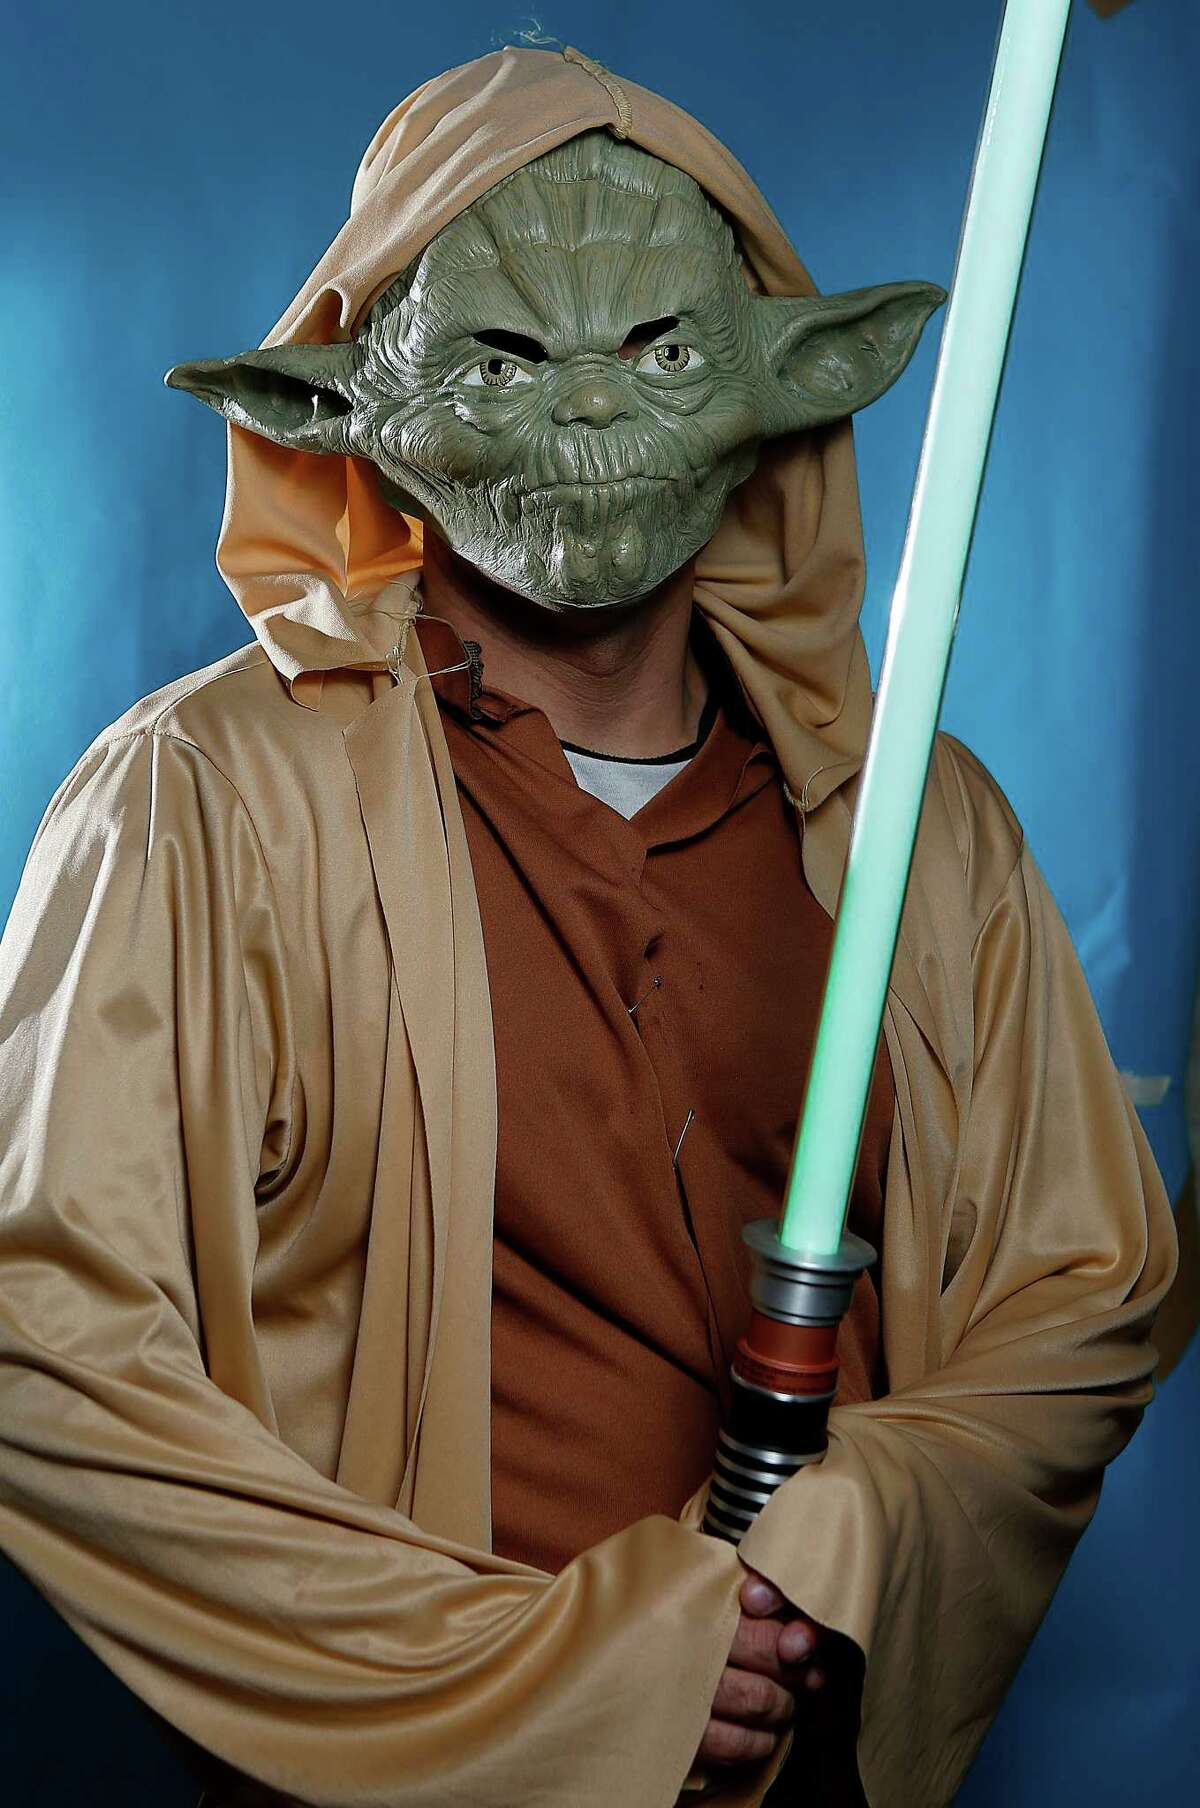 Joshua Ghoreishi dresses as Yoda as he waits to attend the opening showings of Star Wars Episode VII: The Force Awakens at the Edwards Marq-E, Thursday, Dec. 17, 2015, in Houston.